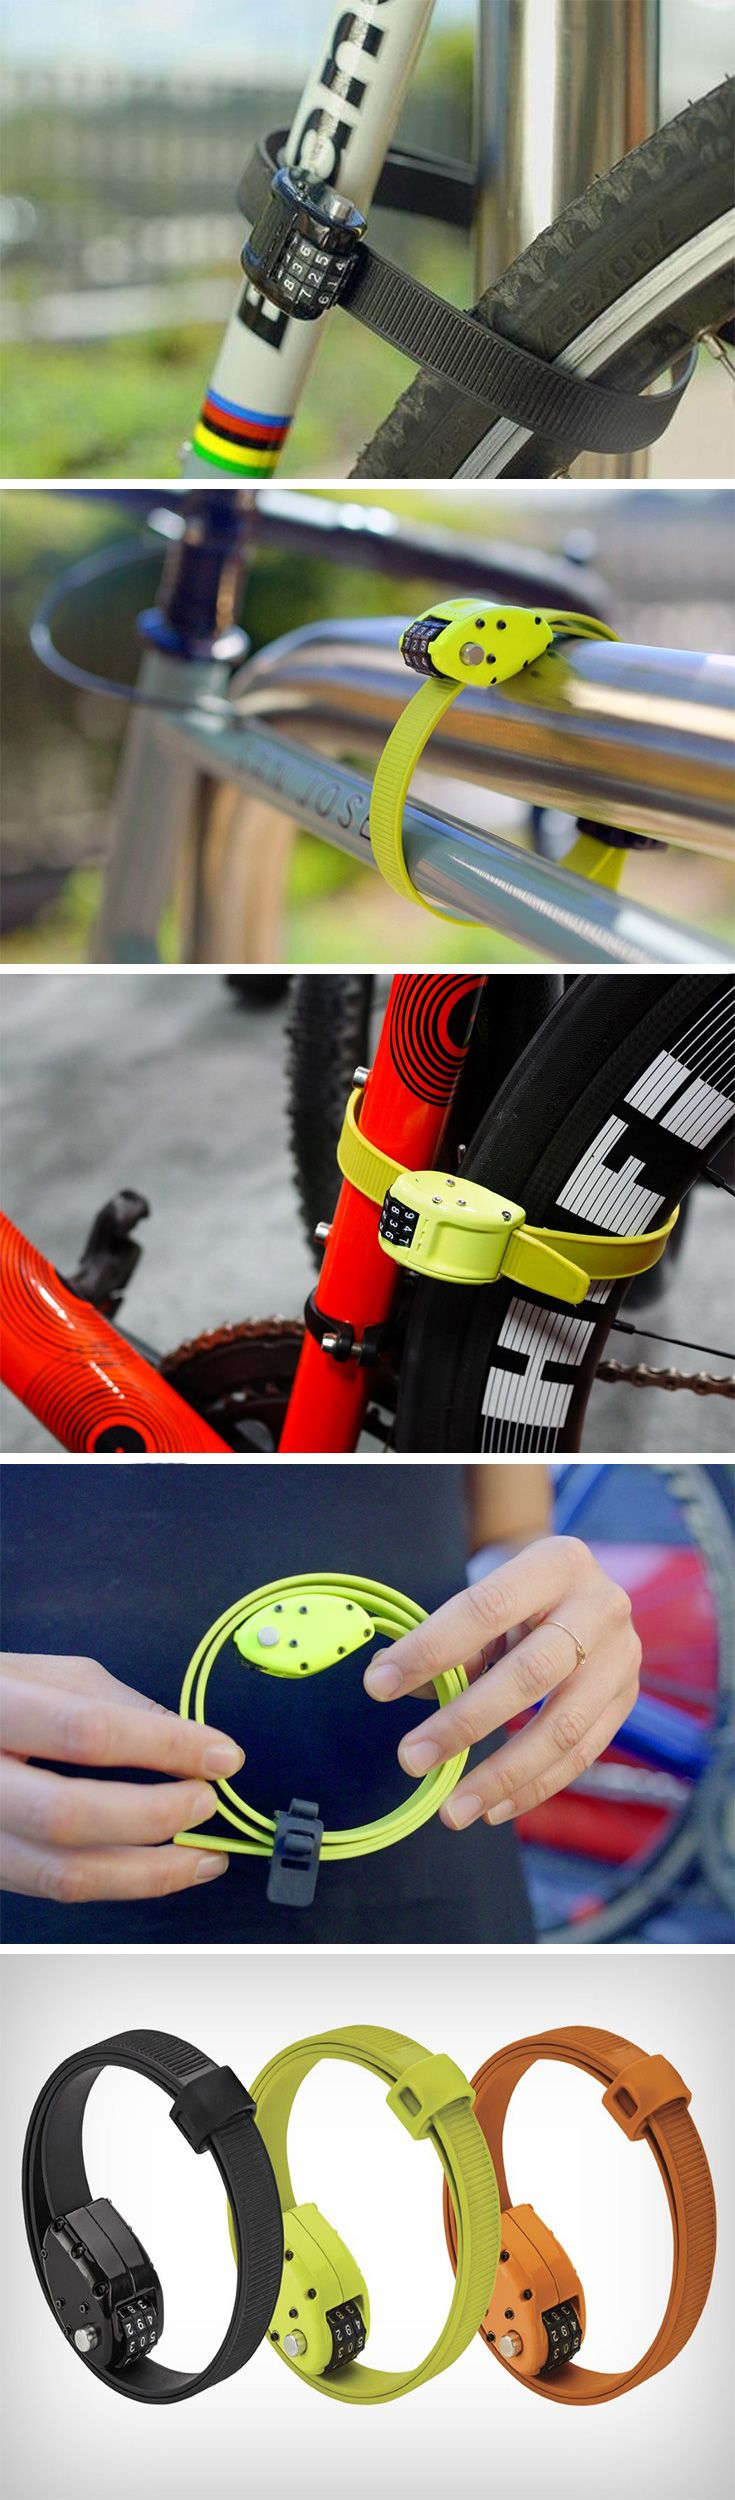 While most bike locks or travel locks are made from metal the Ottolock uses one of the most light yet powerful polymers known to man. Kevlar. The same material used in bulletproof vests, the Kevlar framework of the Ottolock allows it to be lightweight, but virtually indestructible. No amounts of strength can break apart the Ottolock.